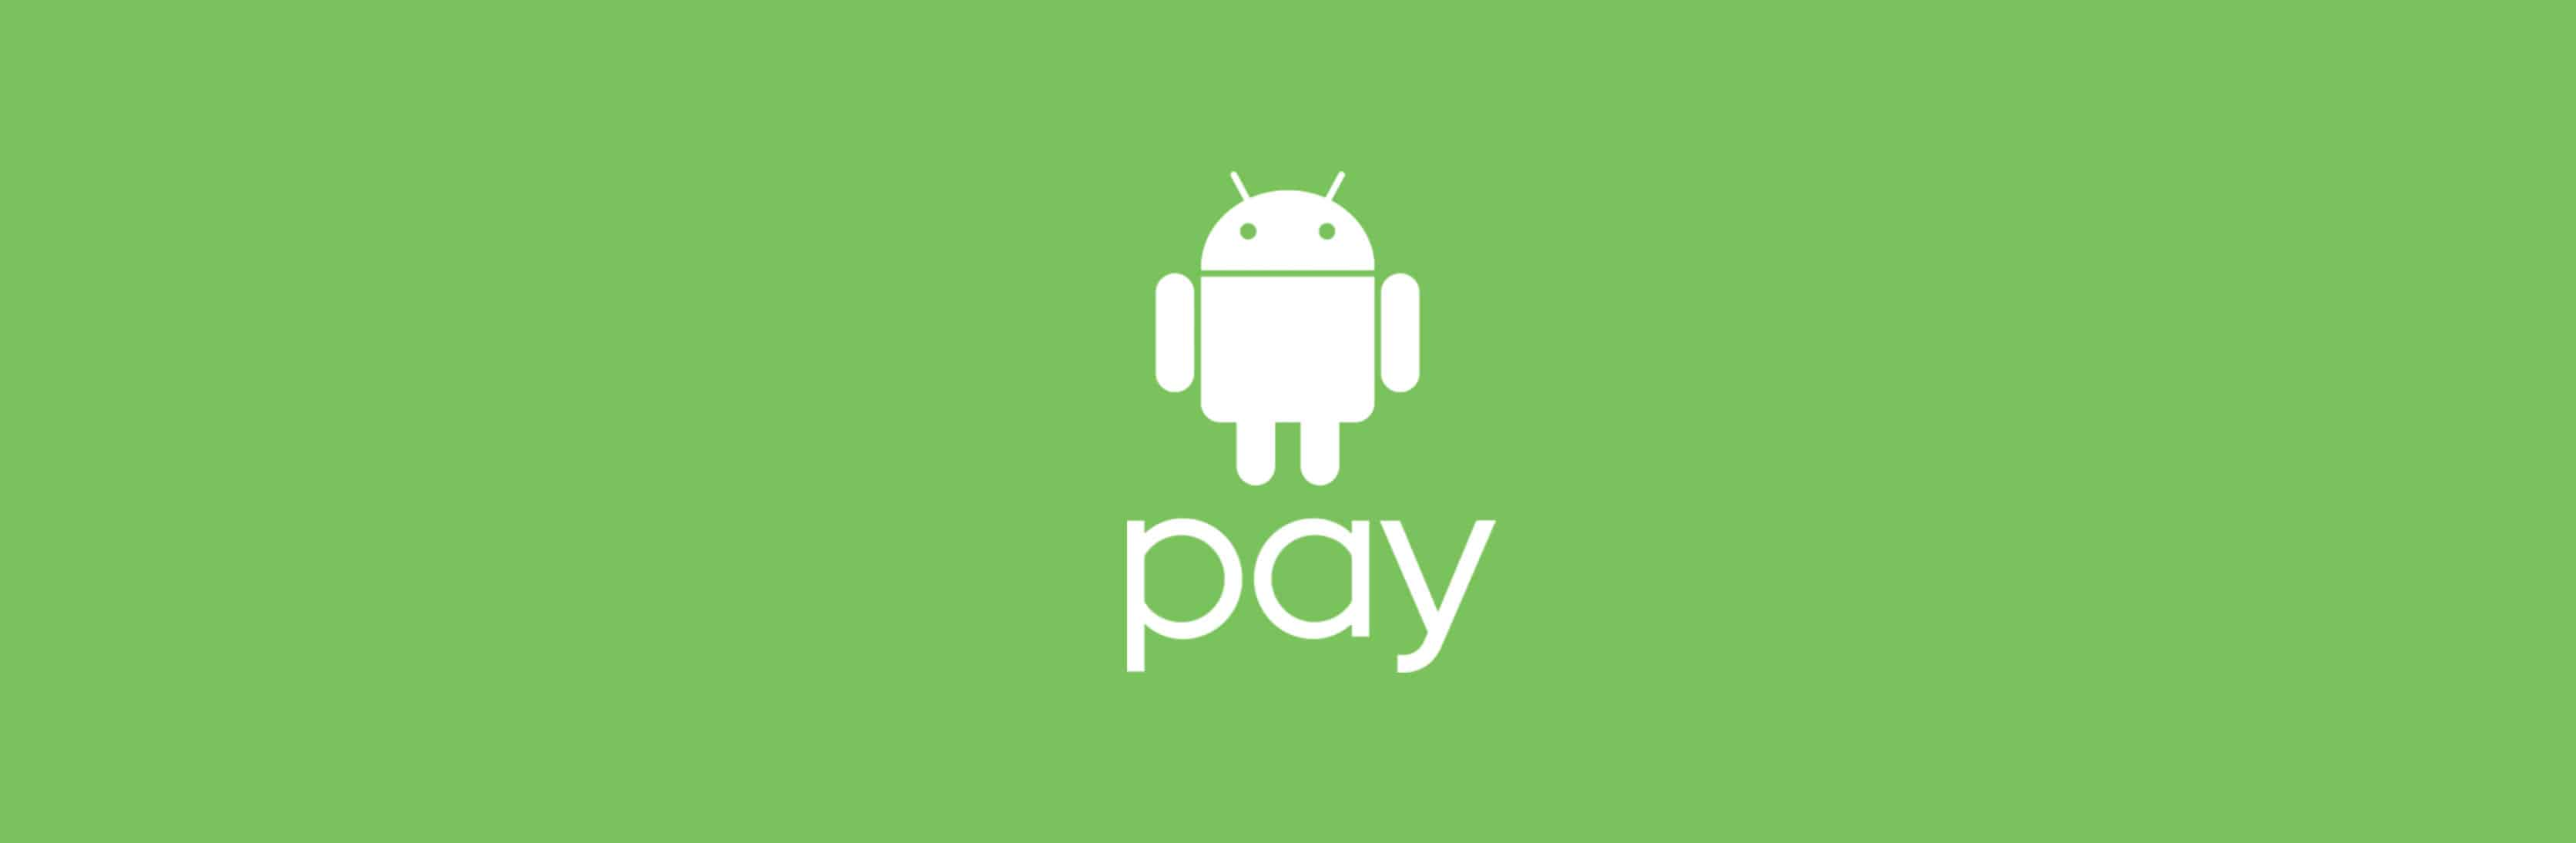 Android Pay: Now Allows International money transfers